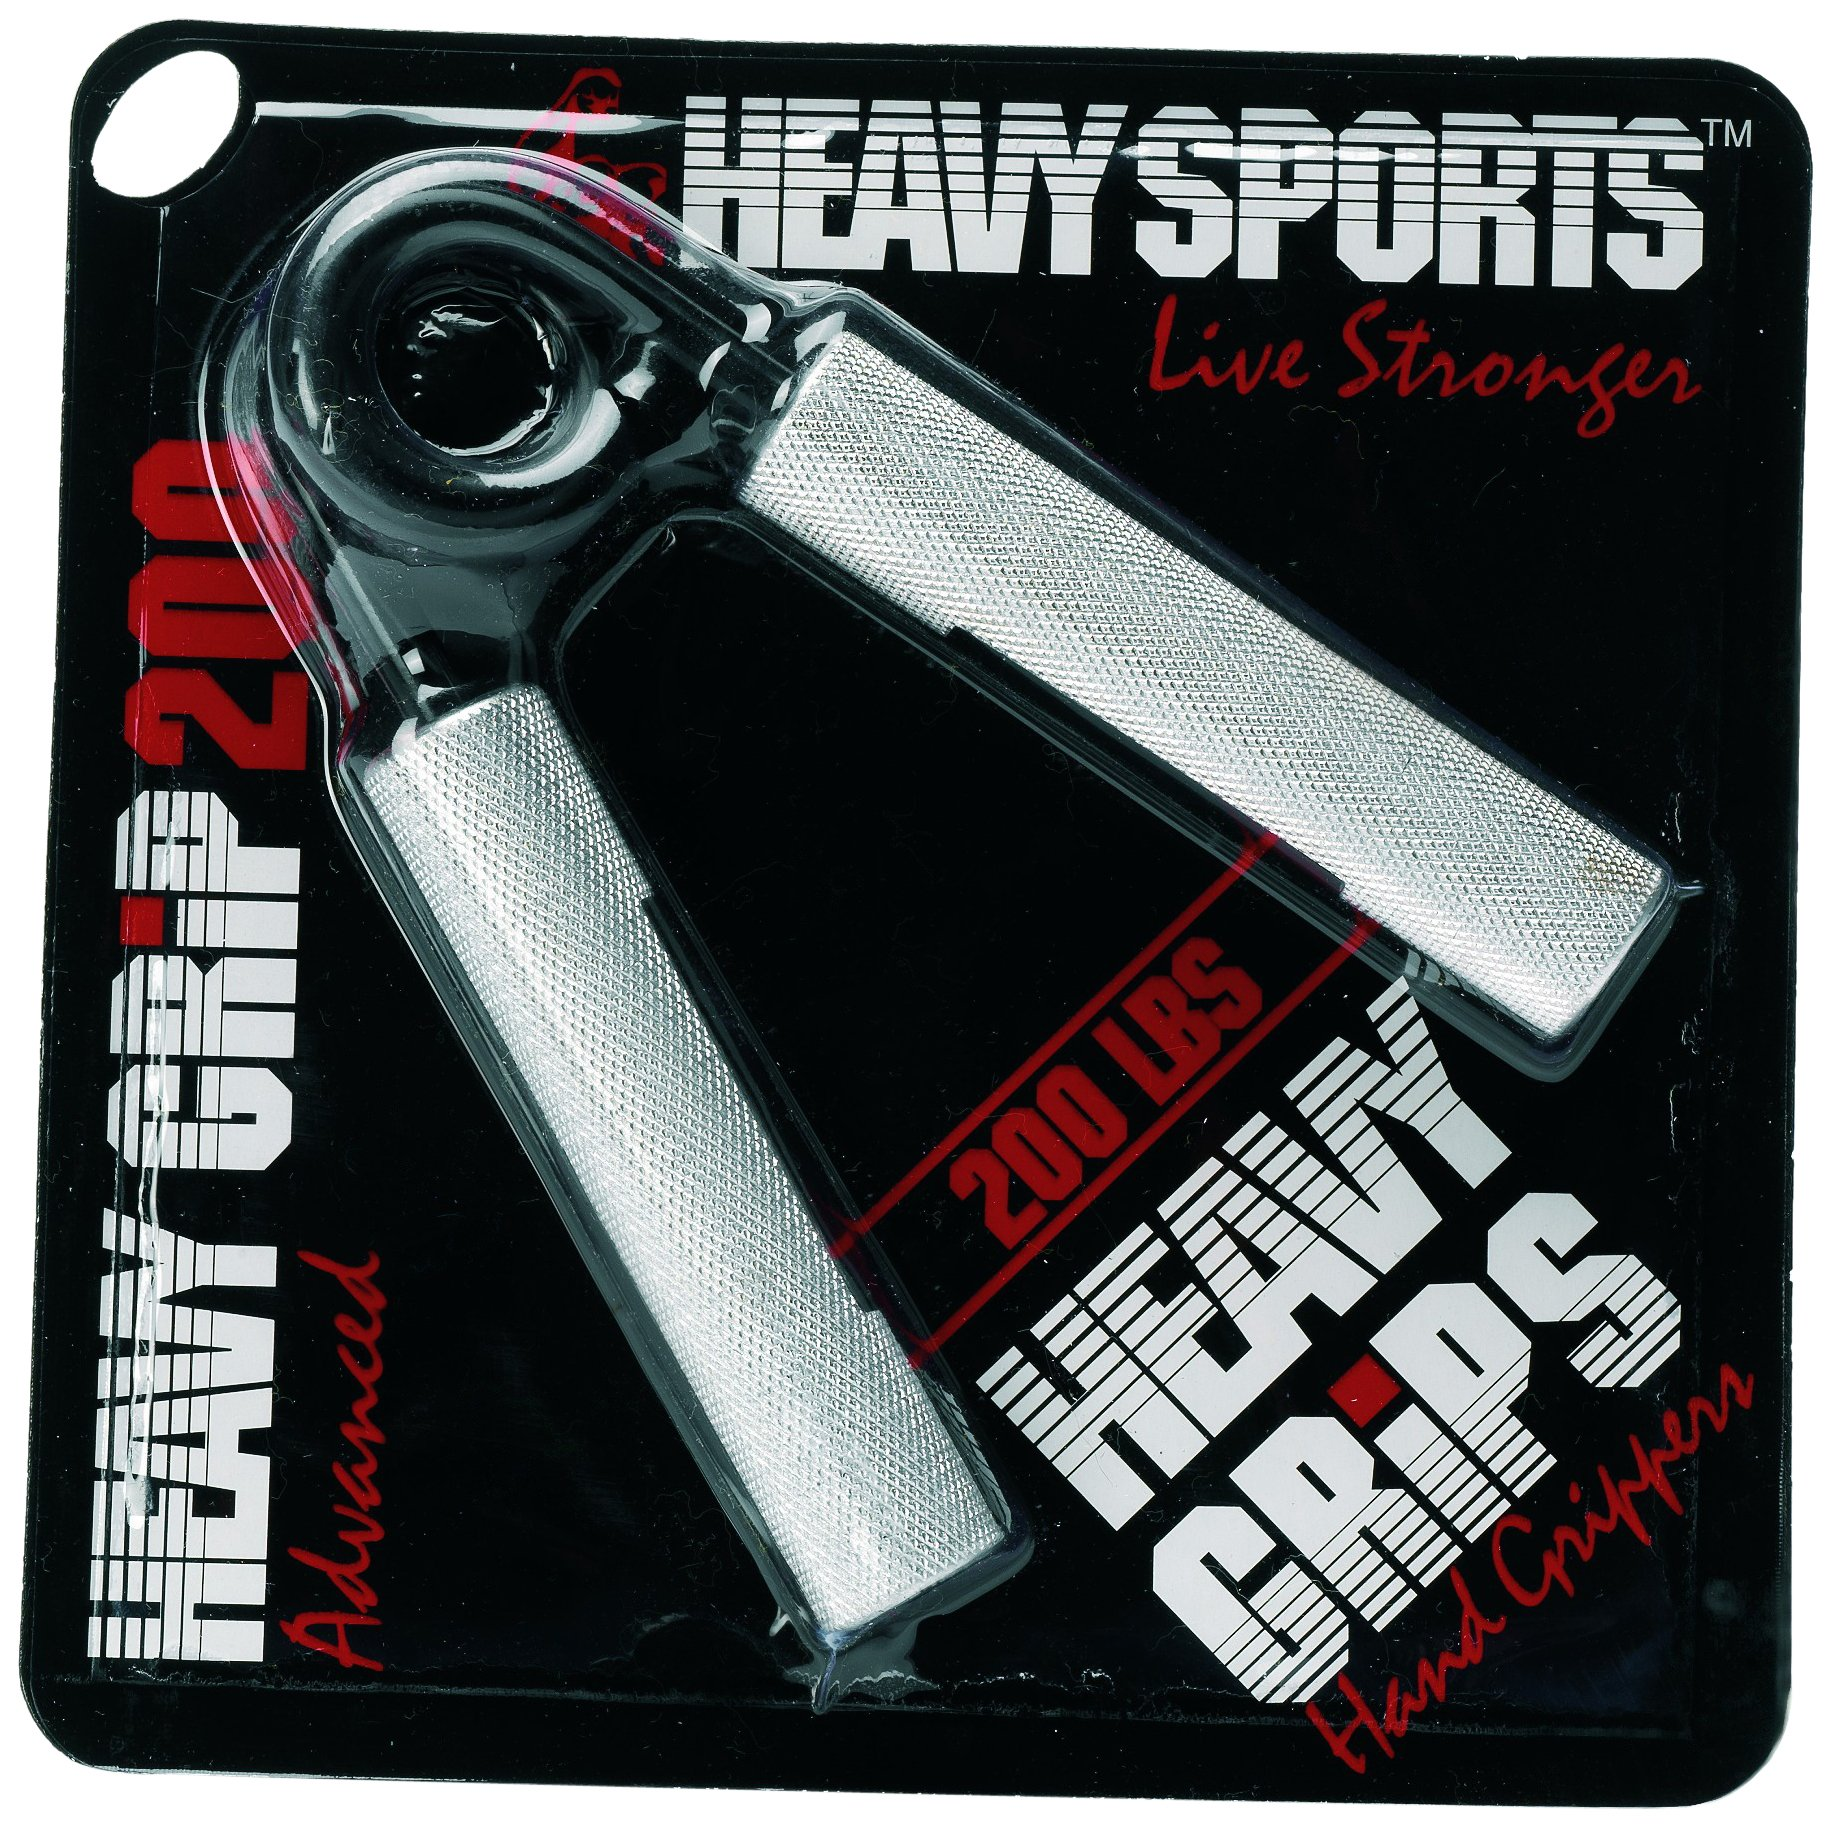 Heavy Grips - 200 lbs Resistance - Advanced - Grip Strengthener - Hand Exerciser - Hand Grippers for Beginners to Professionals by Heavy Sports